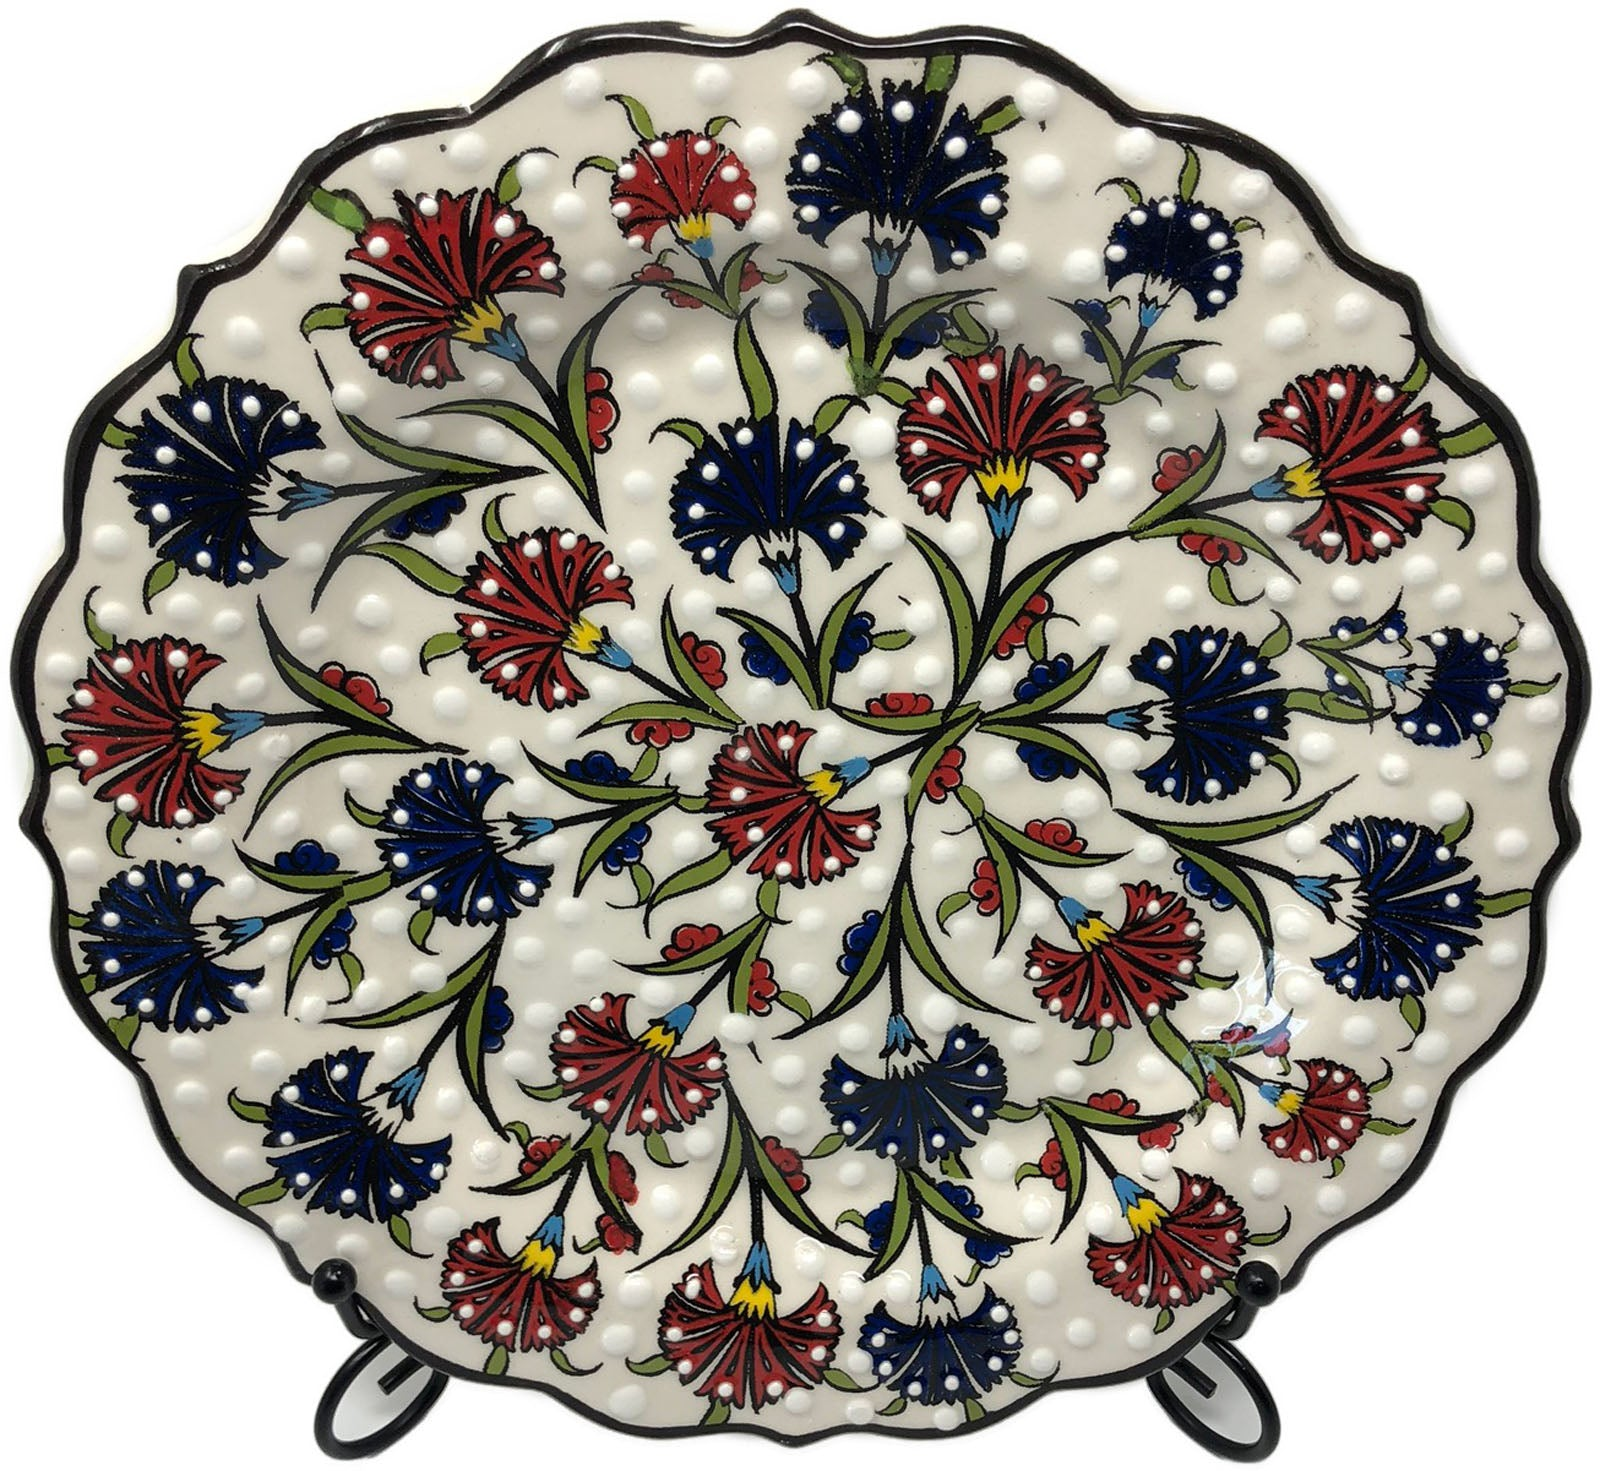 Special Collection Handmade Ceramic 25cm Plate 019